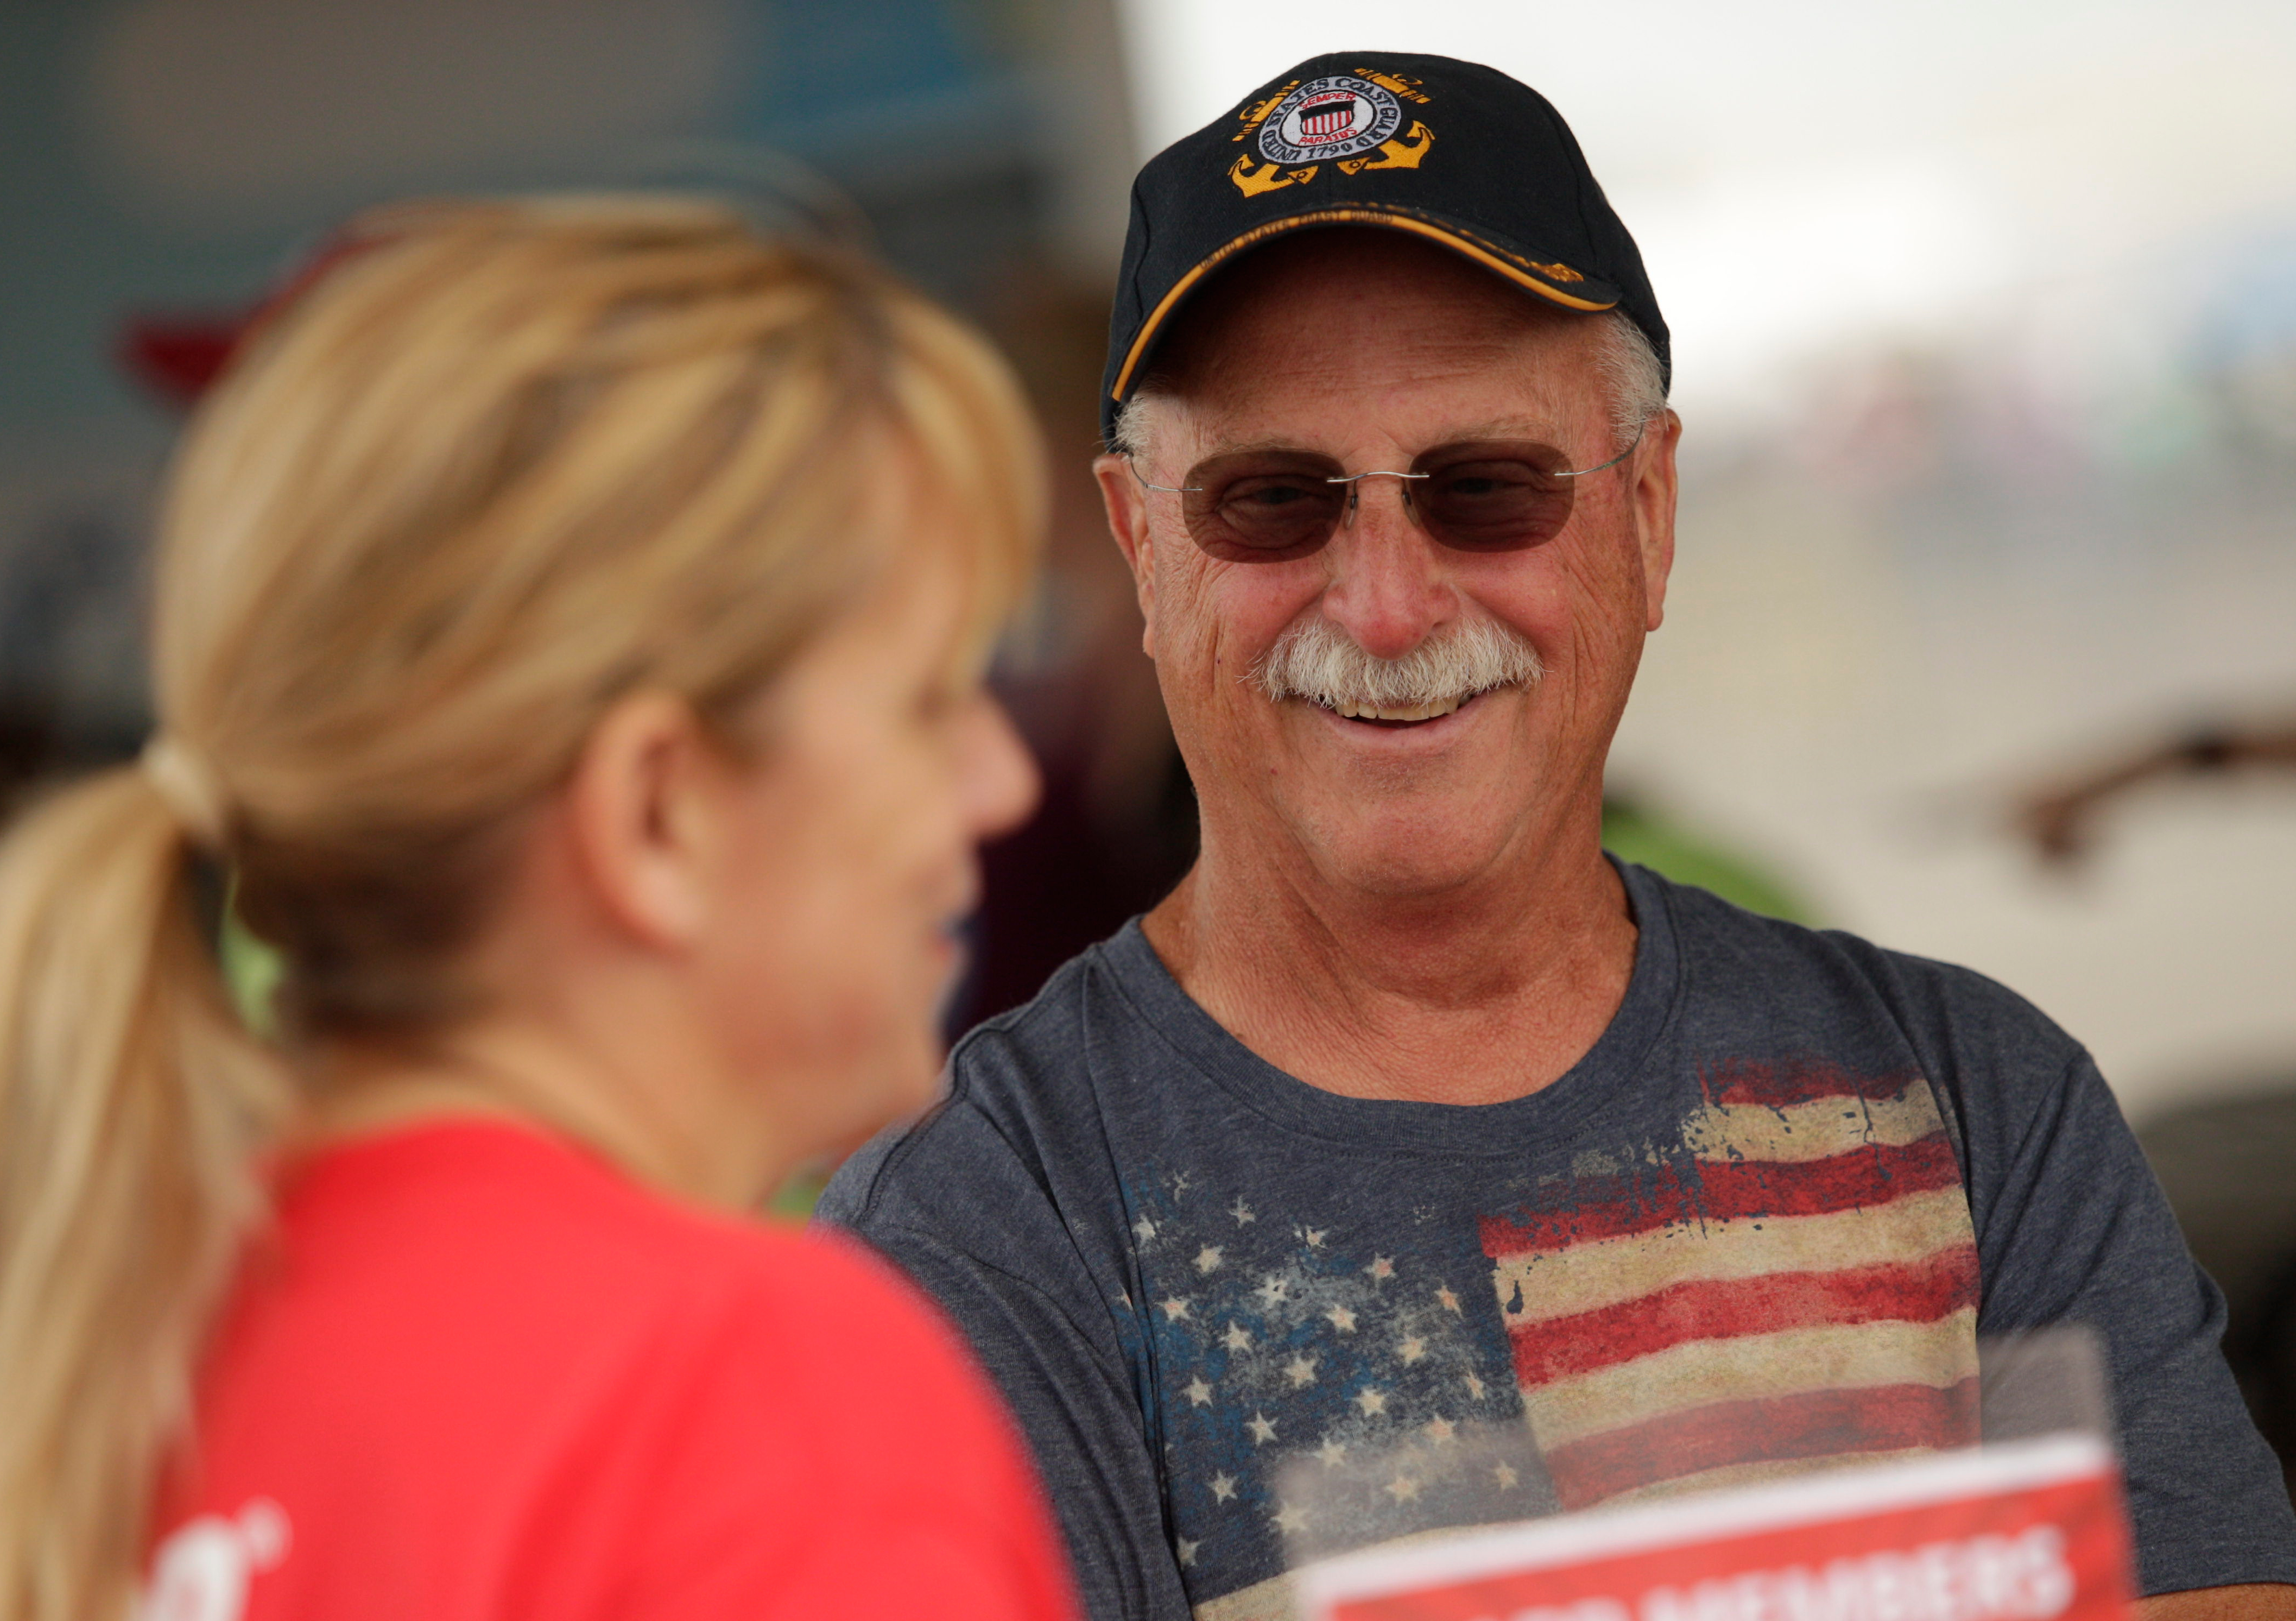 AARP hosts a Block Party event at MacDill AFB